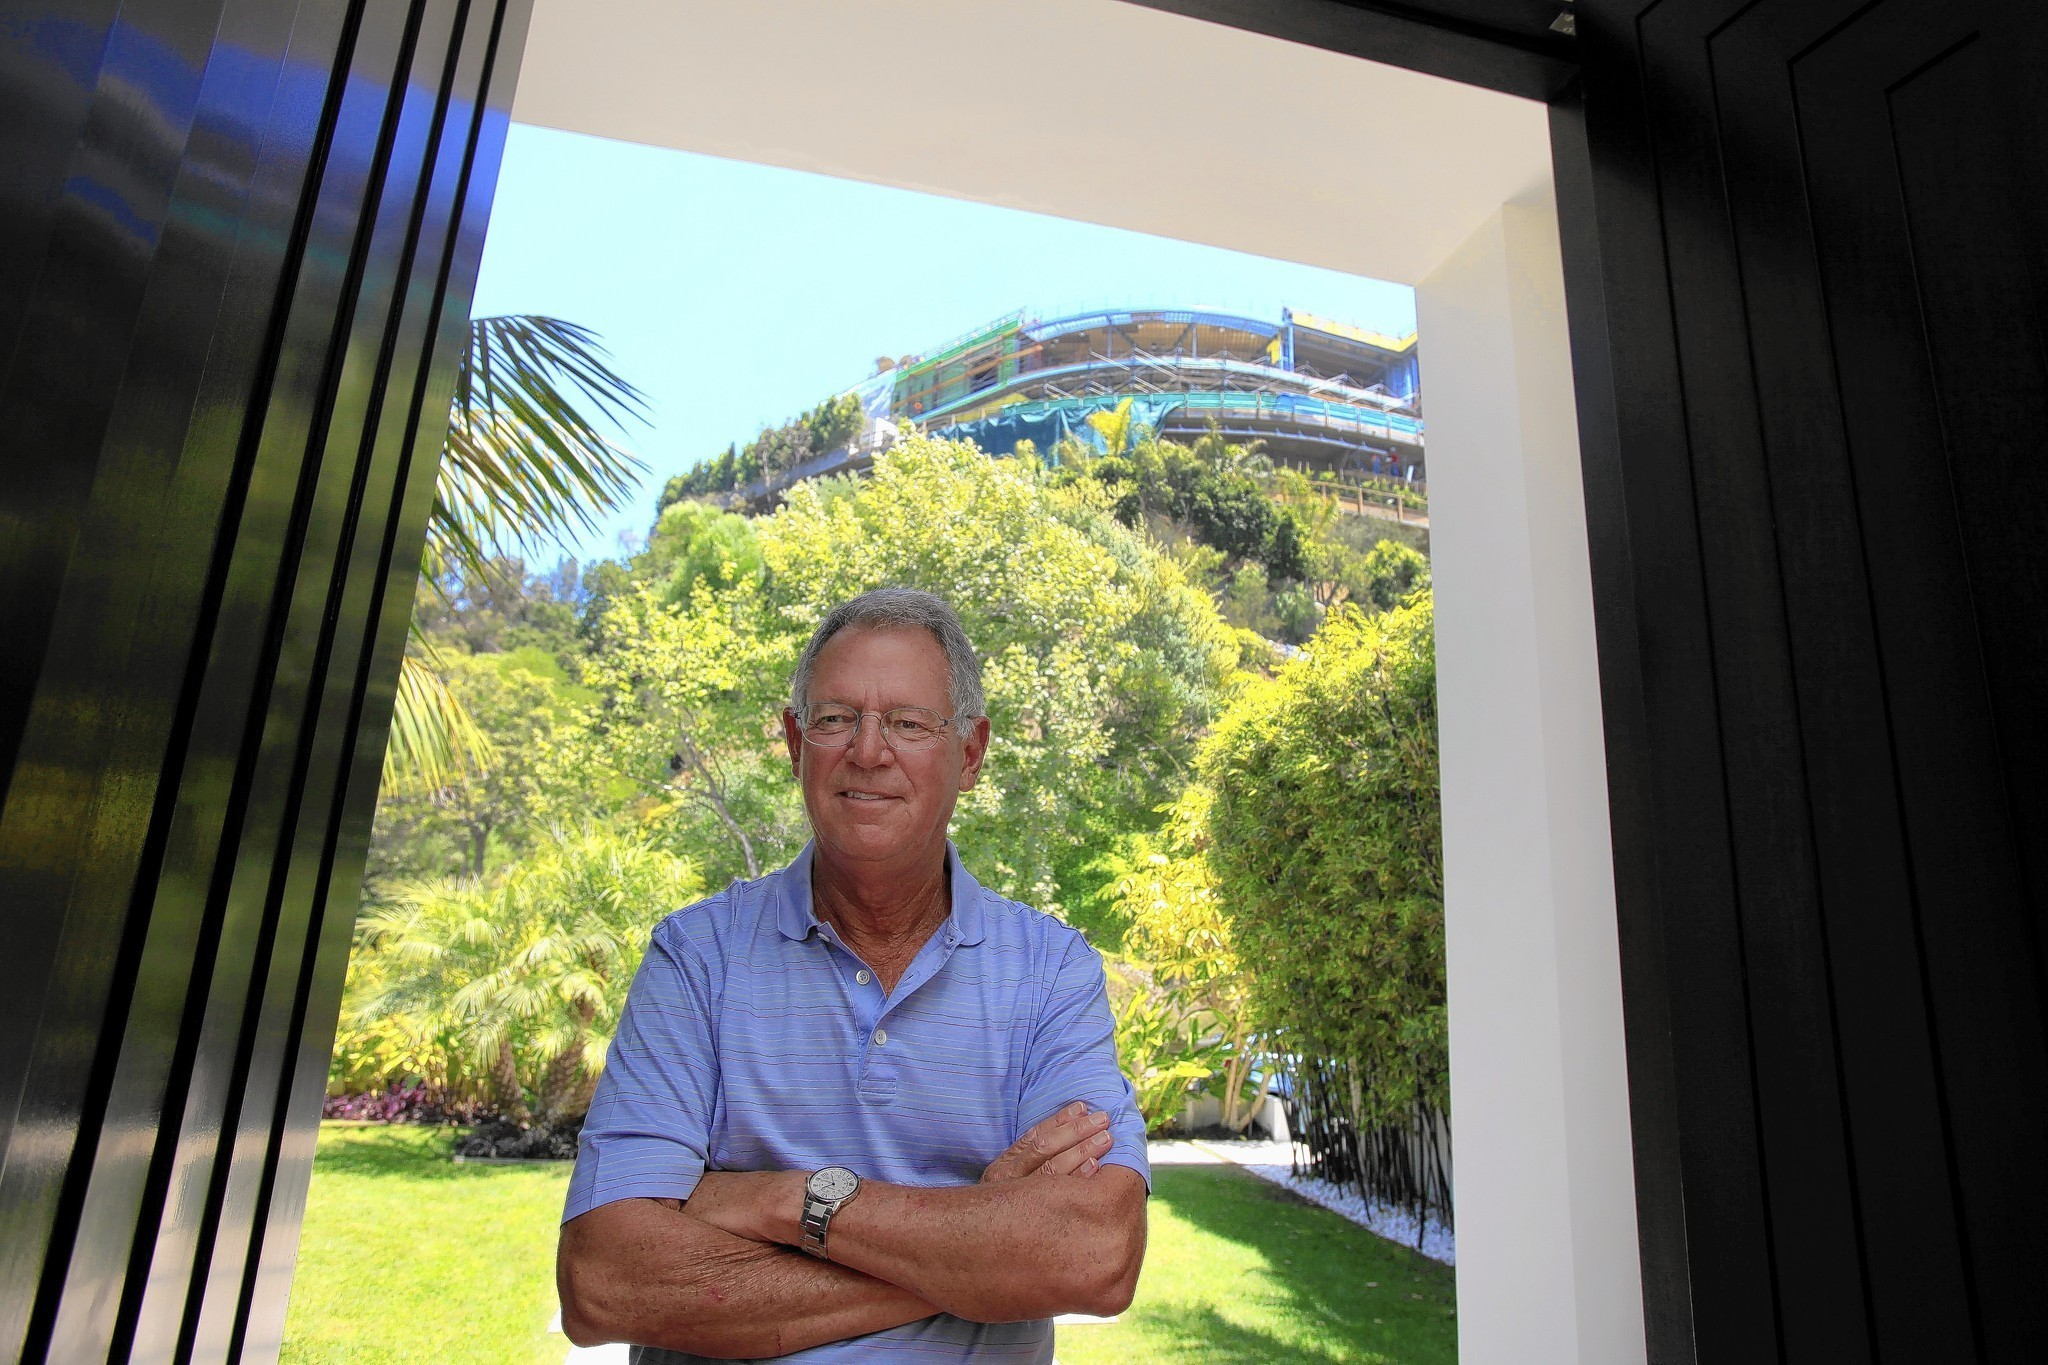 Home to have angered locals is a 30 000 square foot creation of hadid - Building Huge Hillside Homes And Steep Resentment In Bel Air La Times